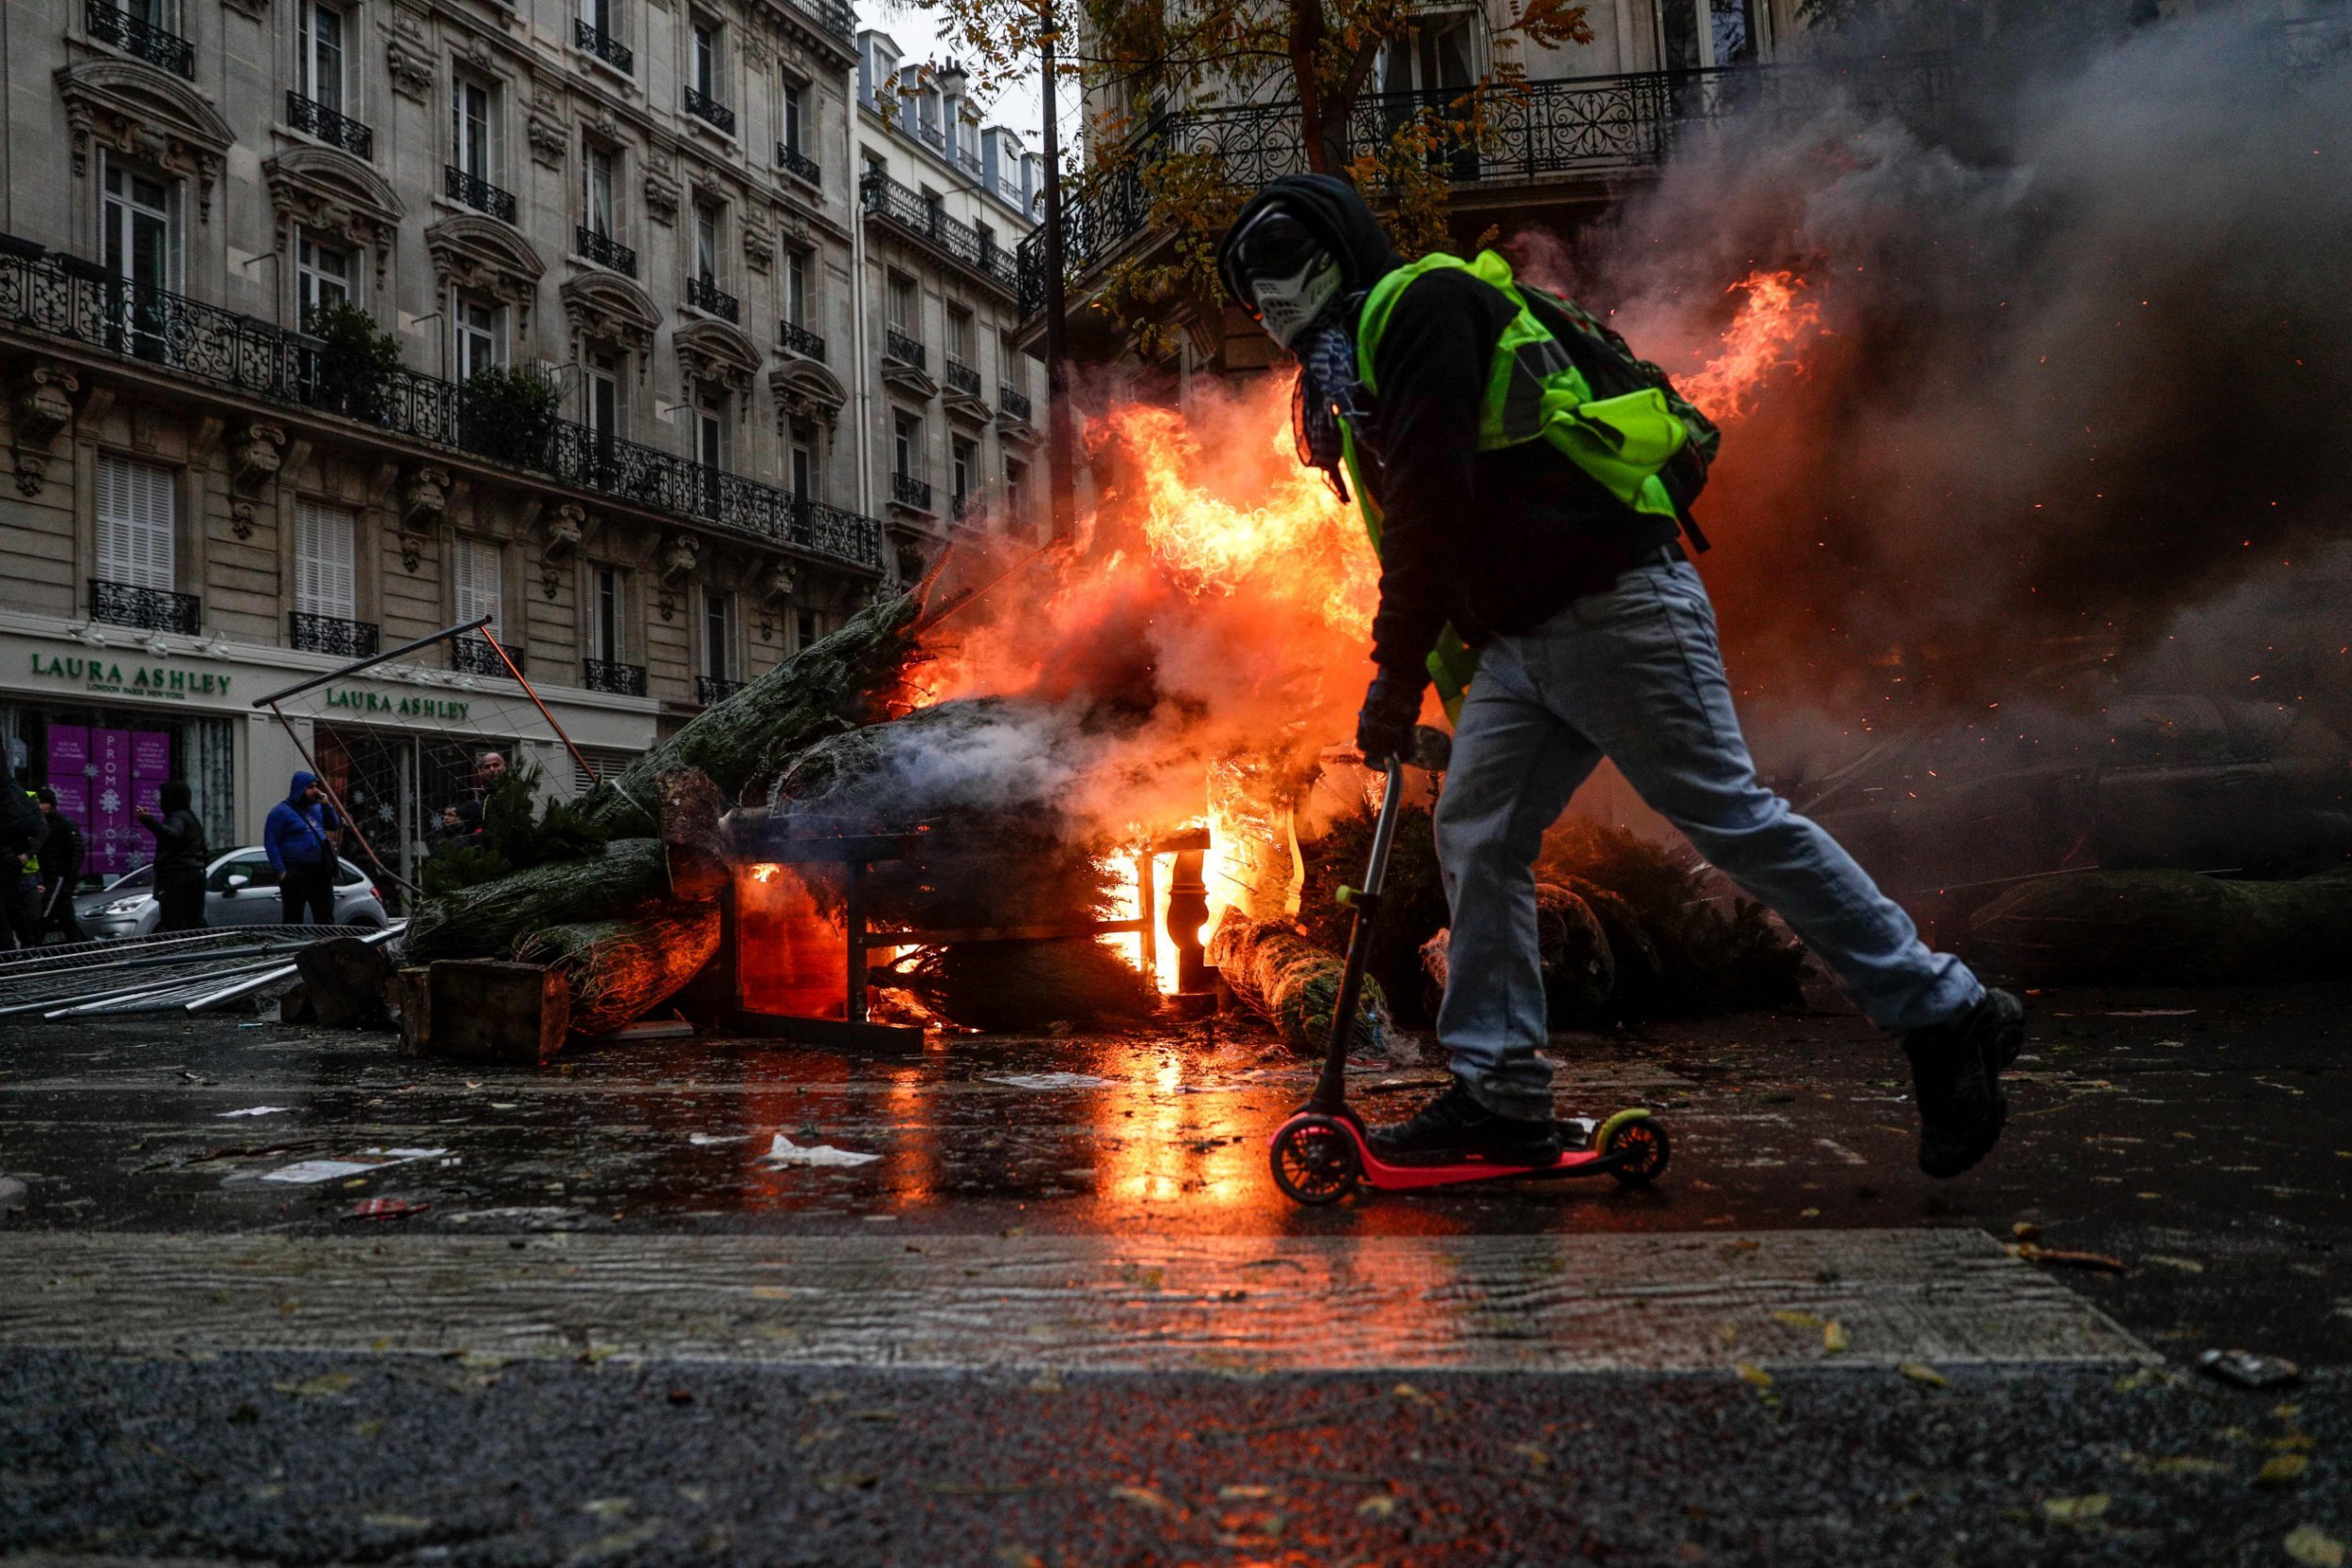 A demonstrator rides past a fire during a protest of Yellow vests (Gilets jaunes) against rising oil prices and living costs, on December 1, 2018 in Paris. - Speaking at the Paris police's command centre, French Prime Minister said 36,000 people were protesting across France, including 5,500 in the capital for this 3rd nationwide day of blockade ands demos. (Photo by Geoffroy VAN DER HASSELT / AFP)GEOFFROY VAN DER HASSELT/AFP/Getty Images